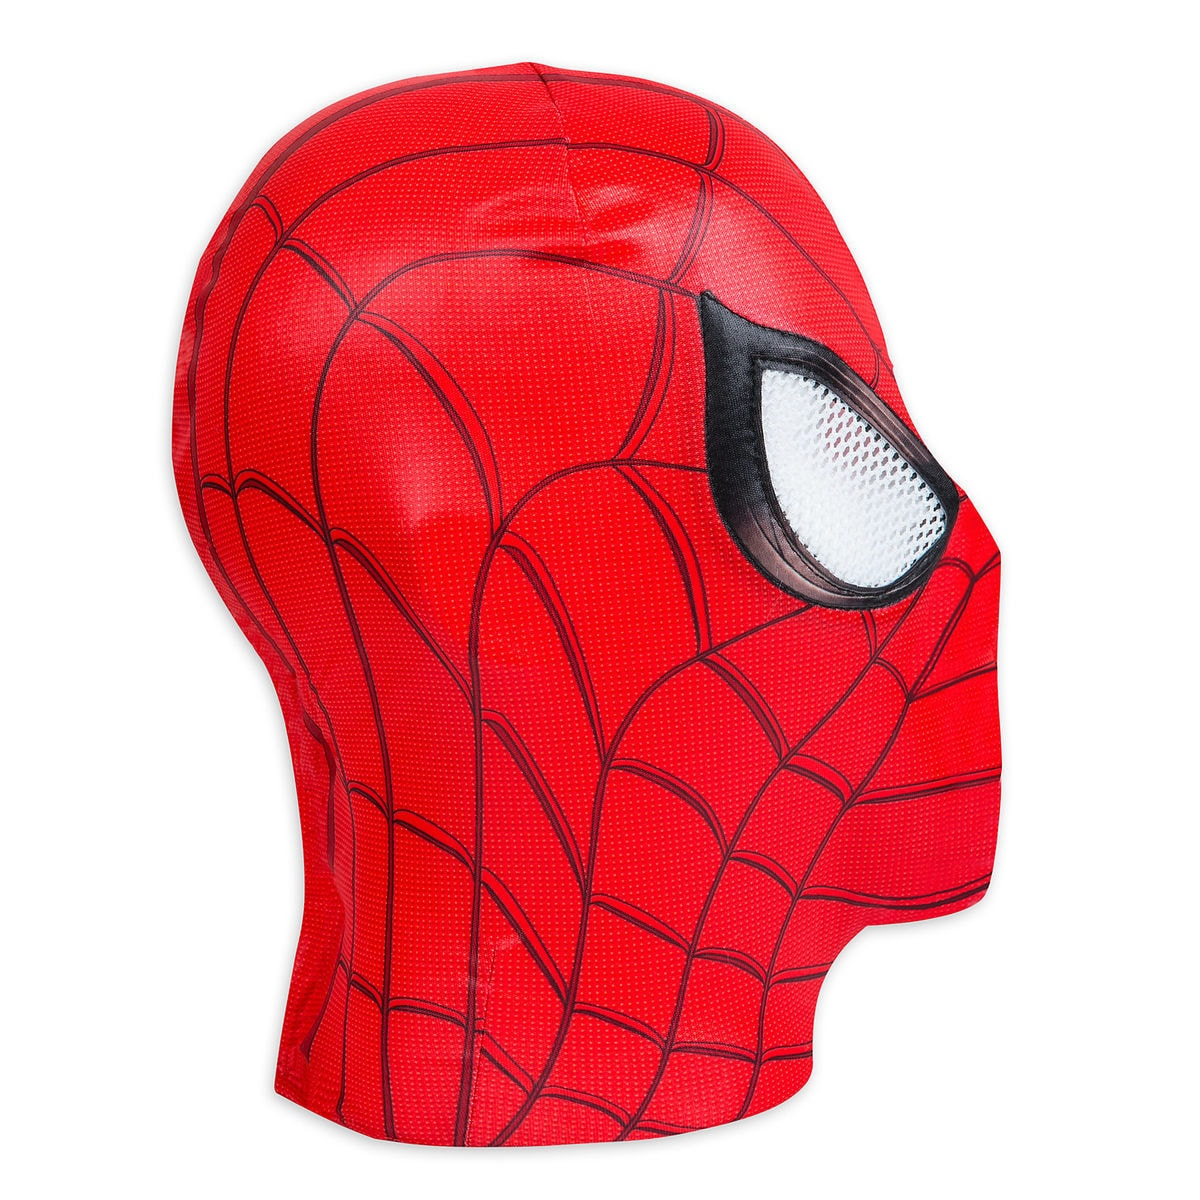 Product Image of Iron Spider Costume for Kids - Marvel s Avengers  Infinity  War   9 539da953b5d69